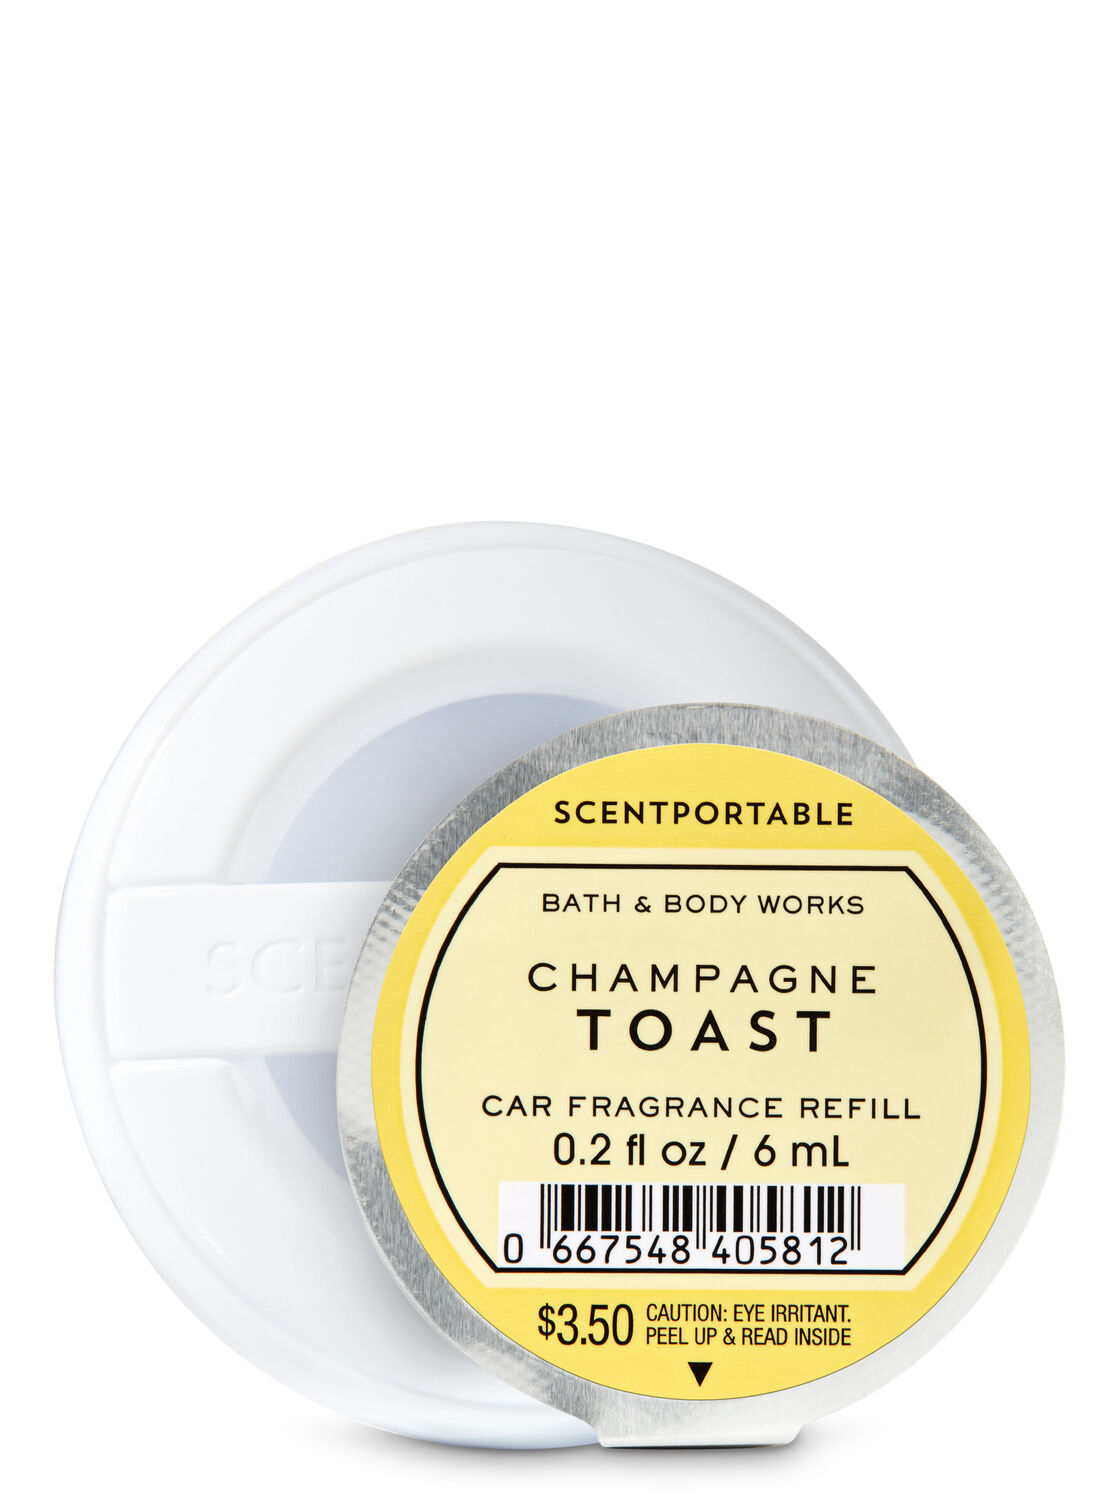 Champagne Toast Car Fragrance Refill